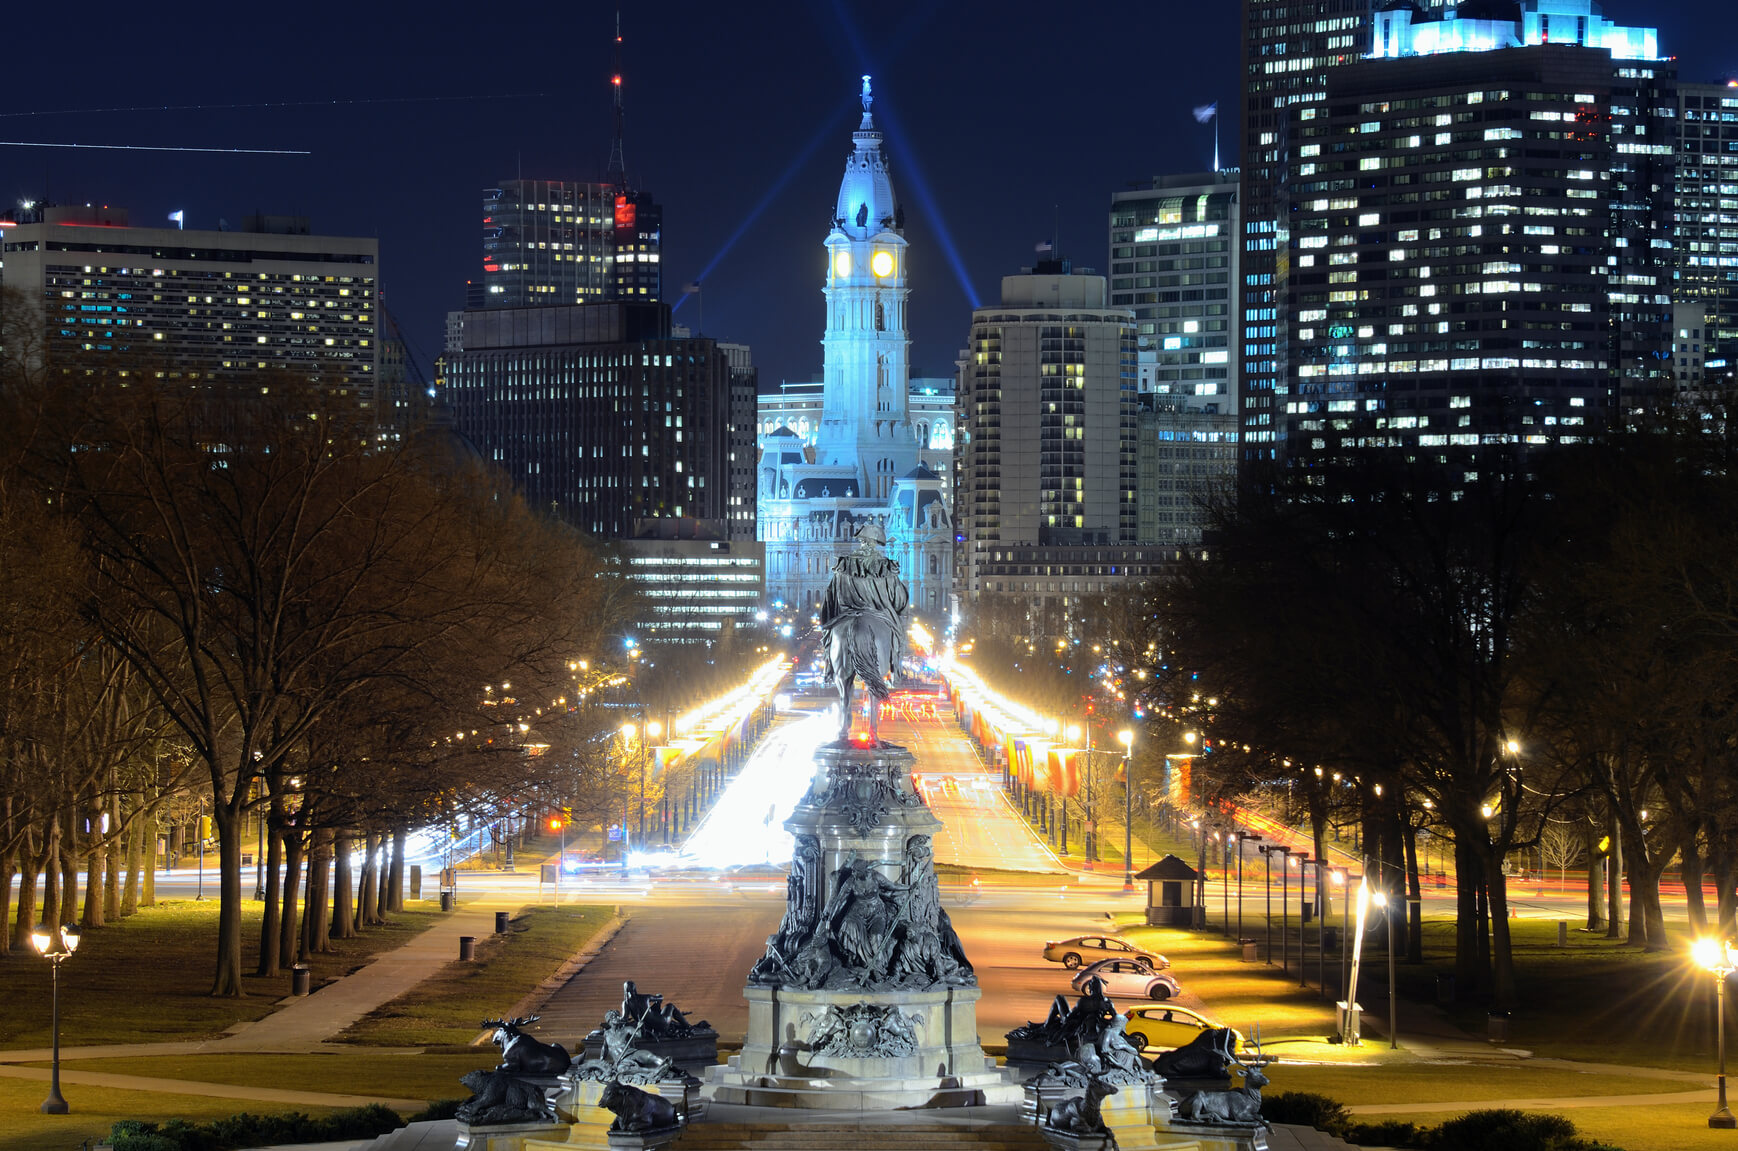 Non-stop from Atlanta to Philadelphia (& vice versa) for only $80 roundtrip (Nov-Apr dates)